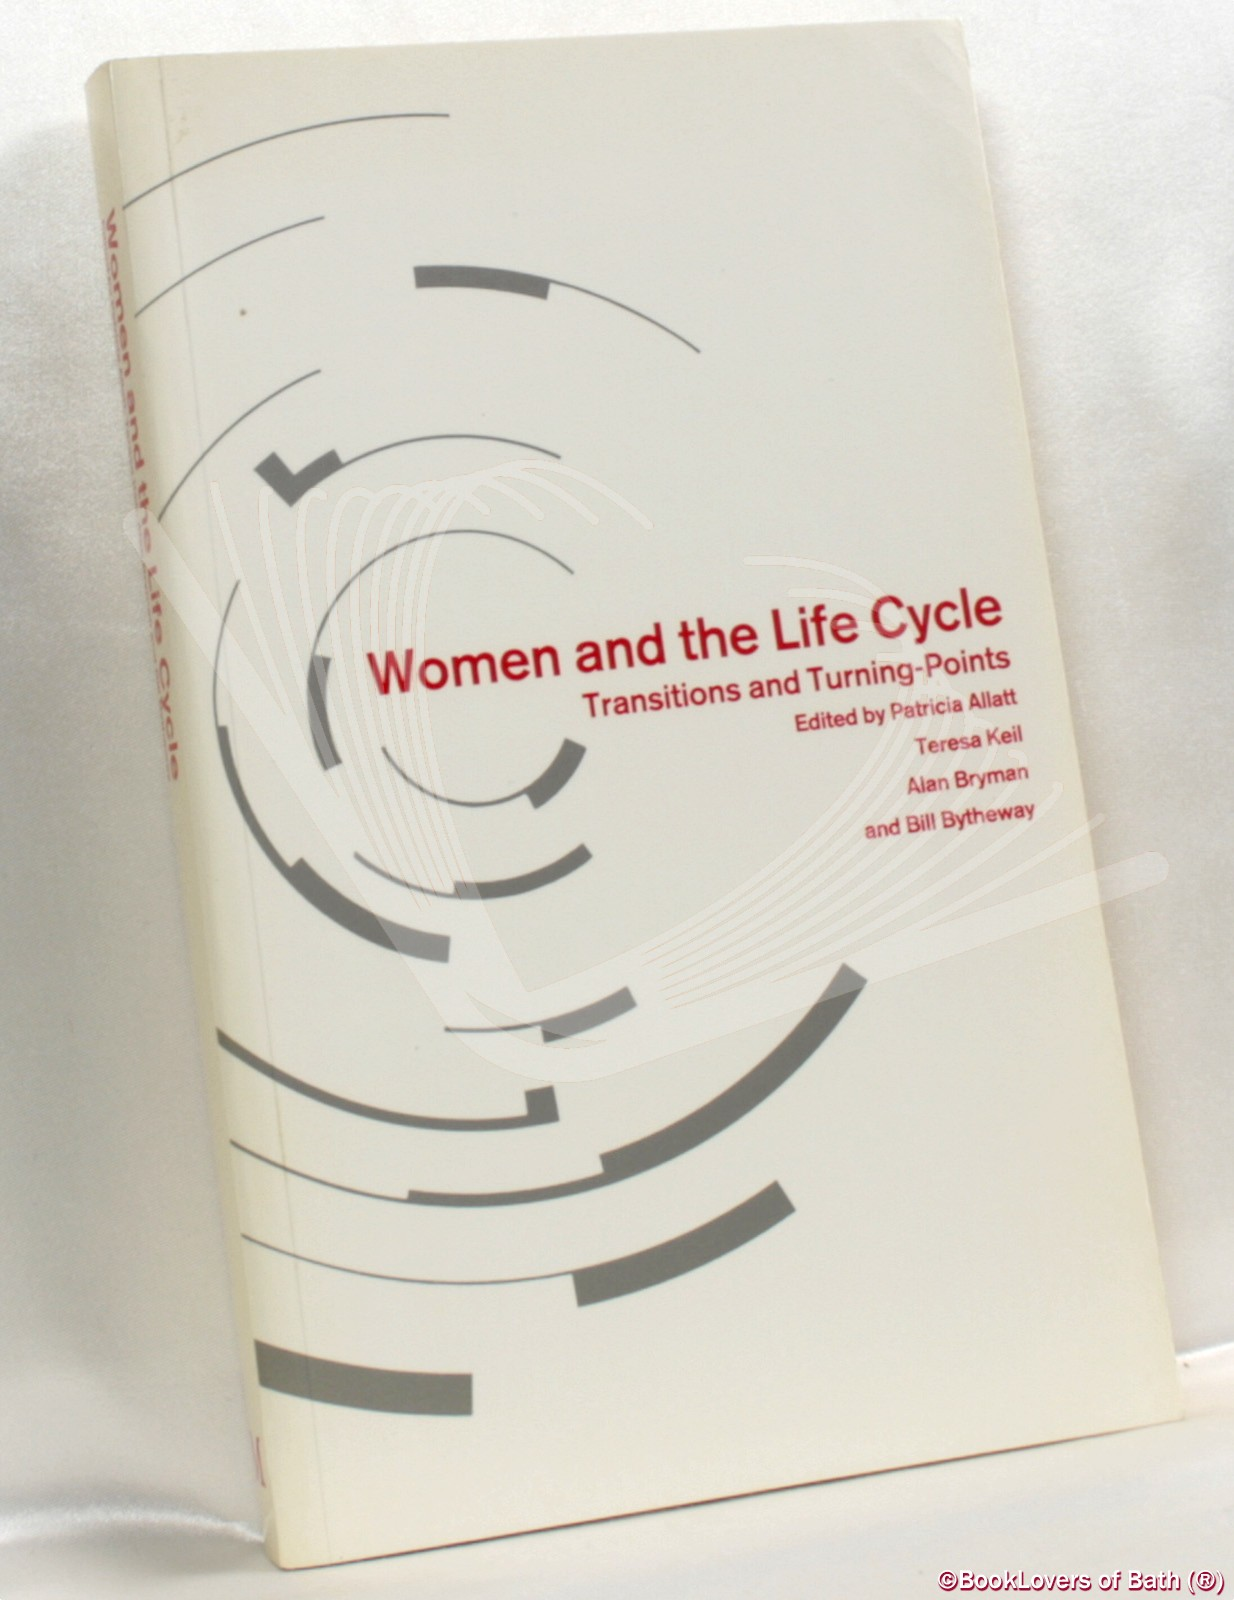 Women and The Life Cycle: Transitions and Turning Points - Edited by Patricia Allatt, Teresa Keil, Alan Bryman & Bill Bytheway